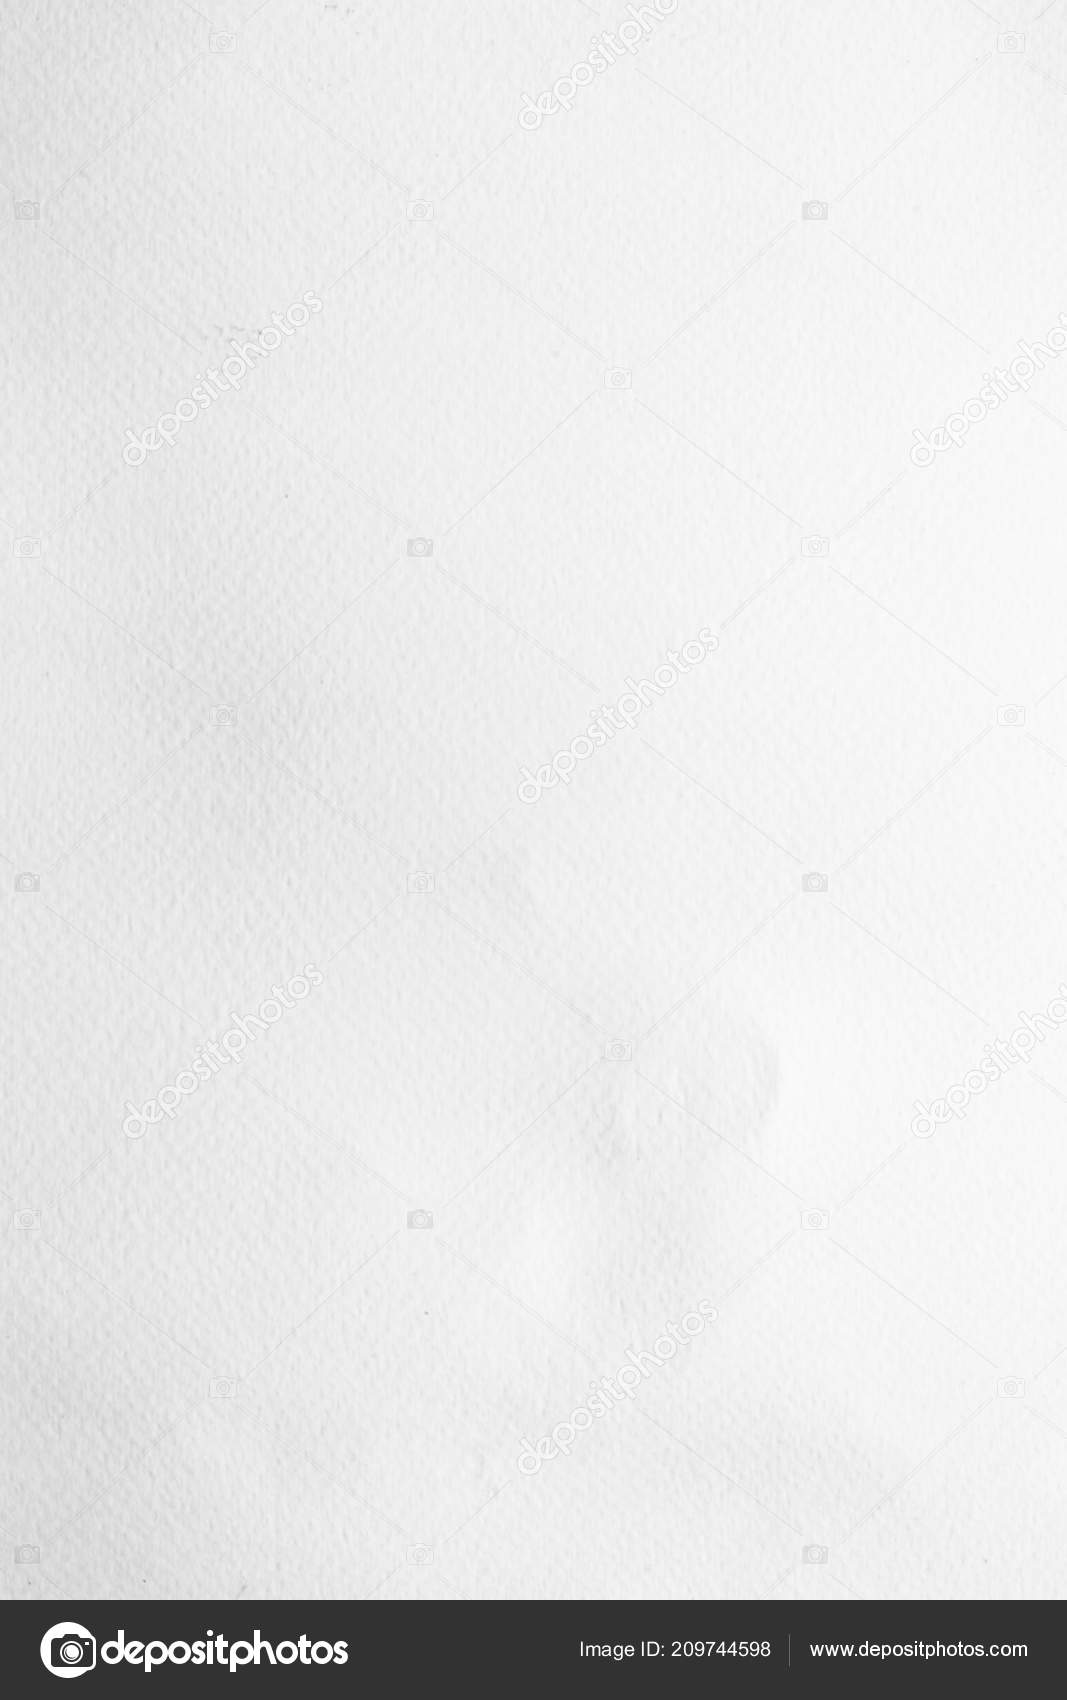 Depositphotos 209744598 Stock Photo Old Grey Eco Drawing Paper